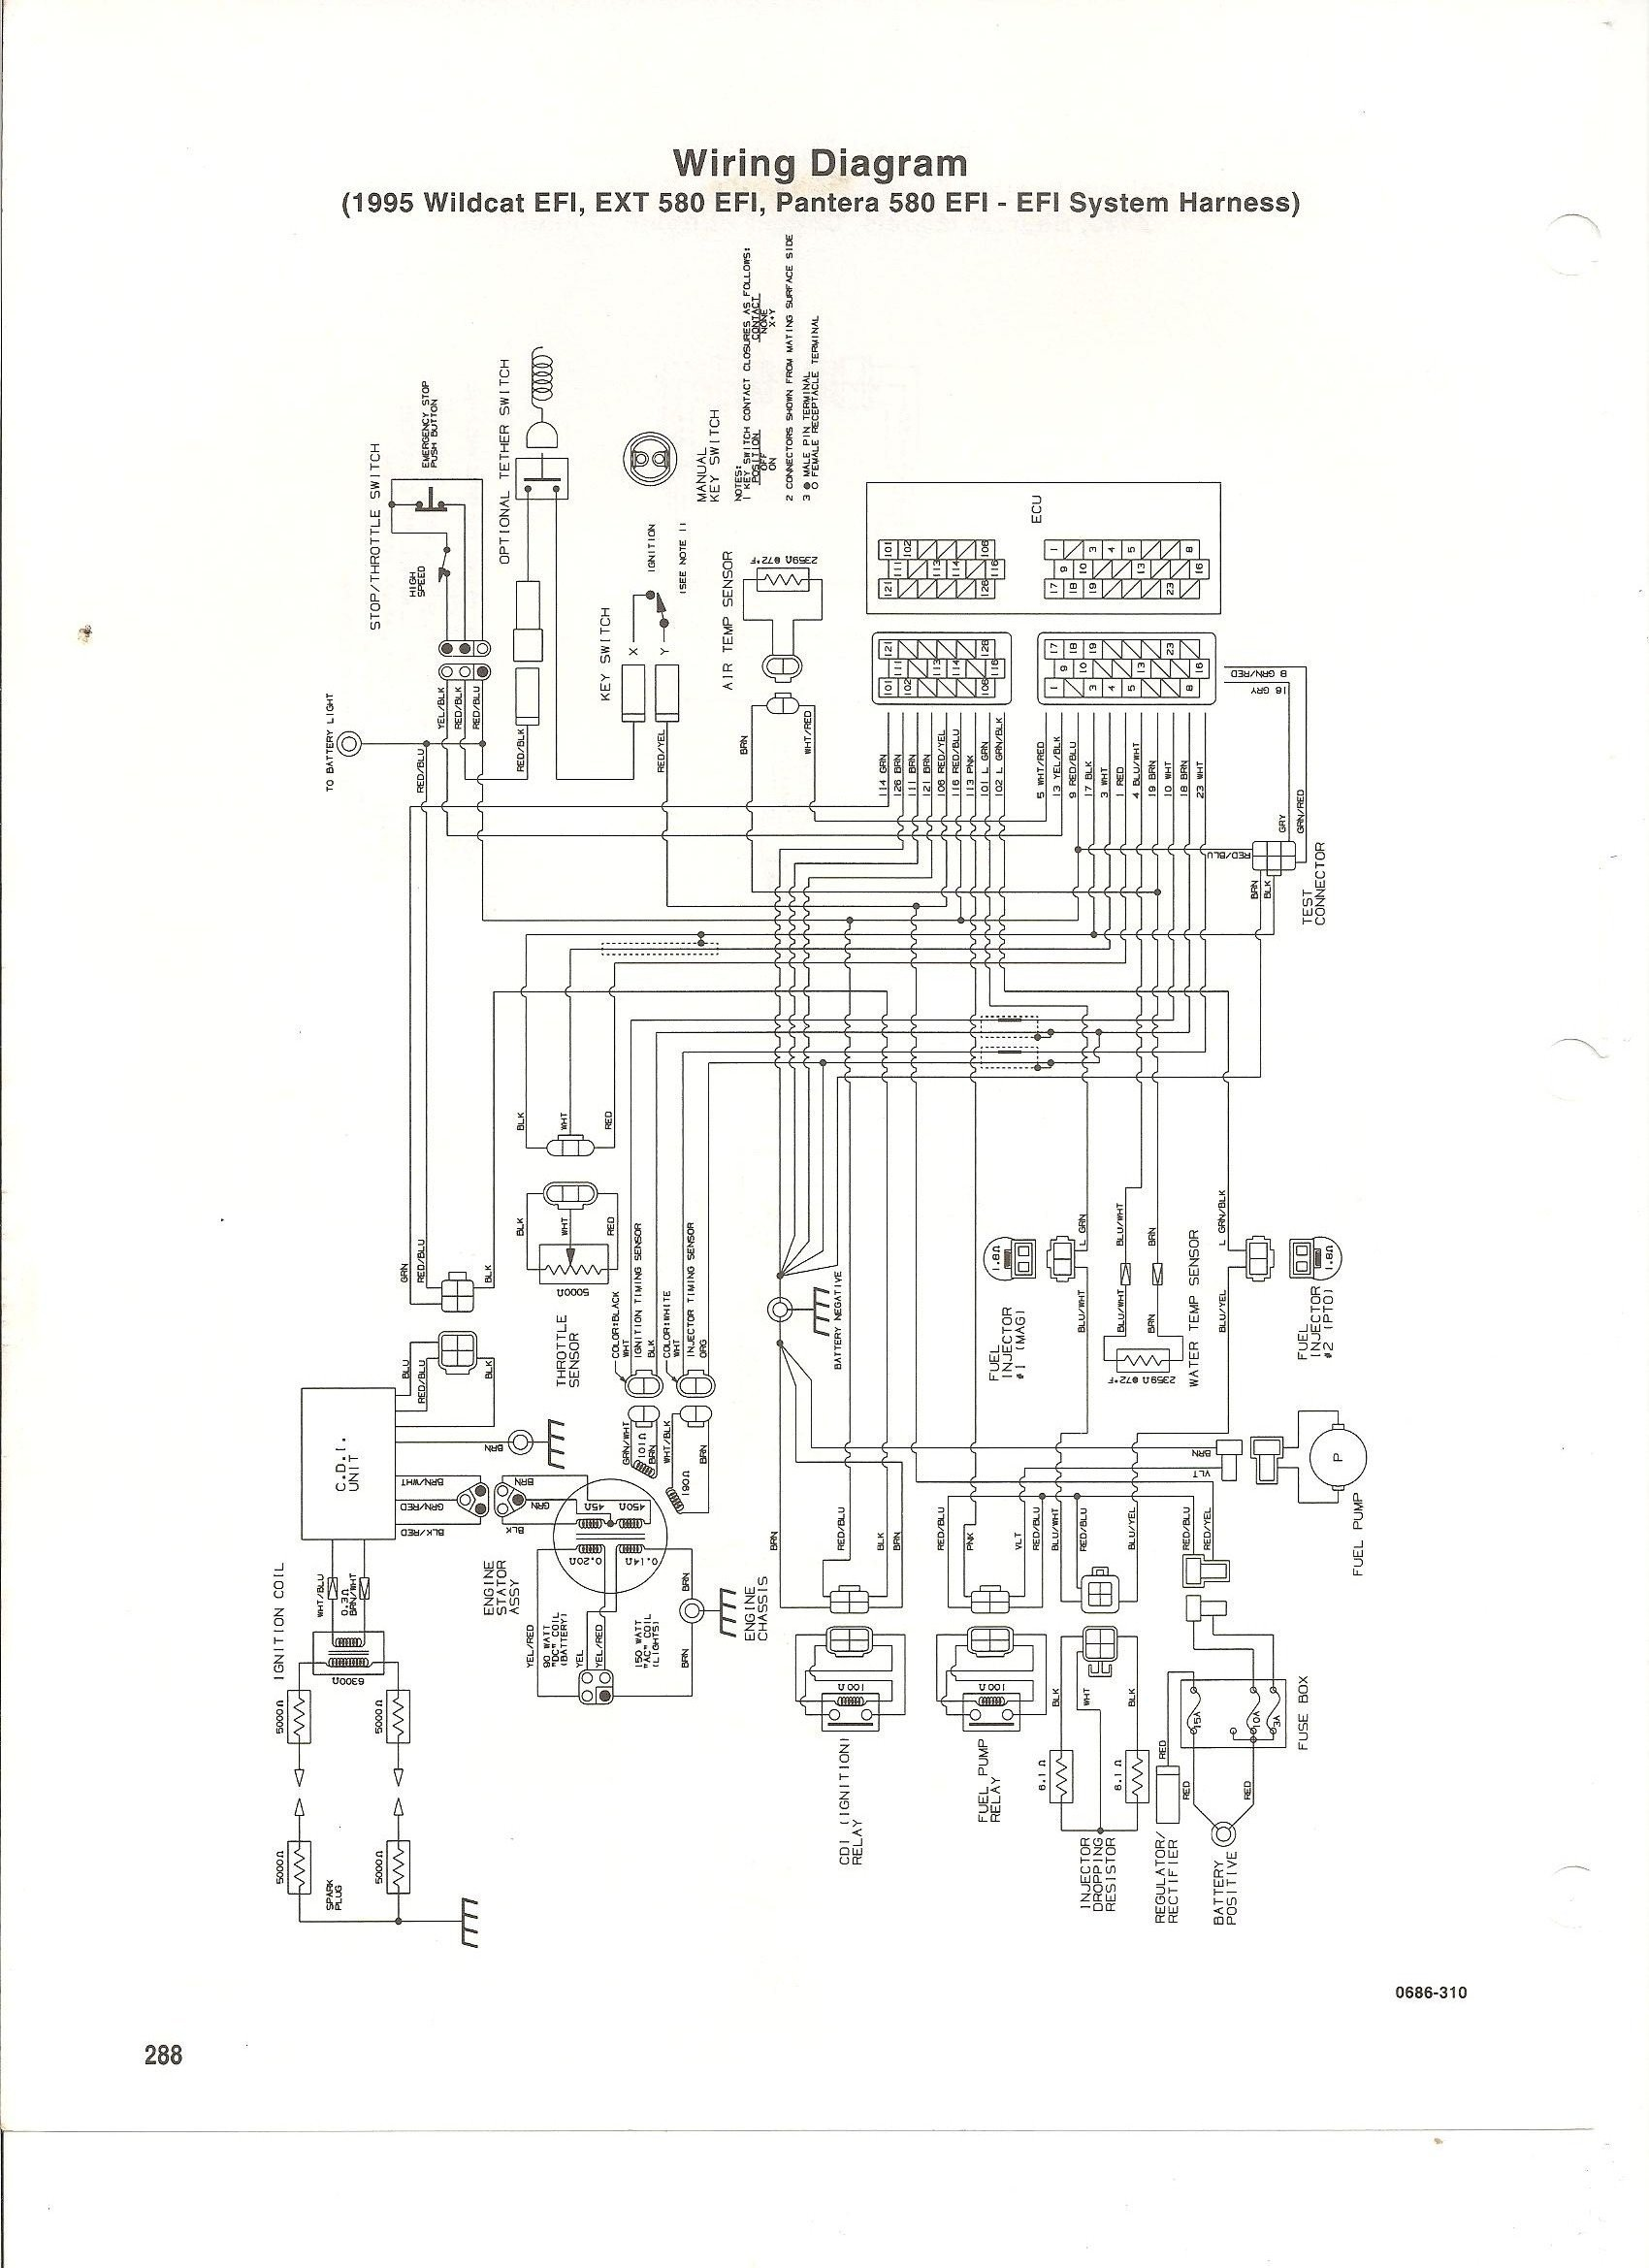 wiring diagram 2000 zrt 600 arctic cat